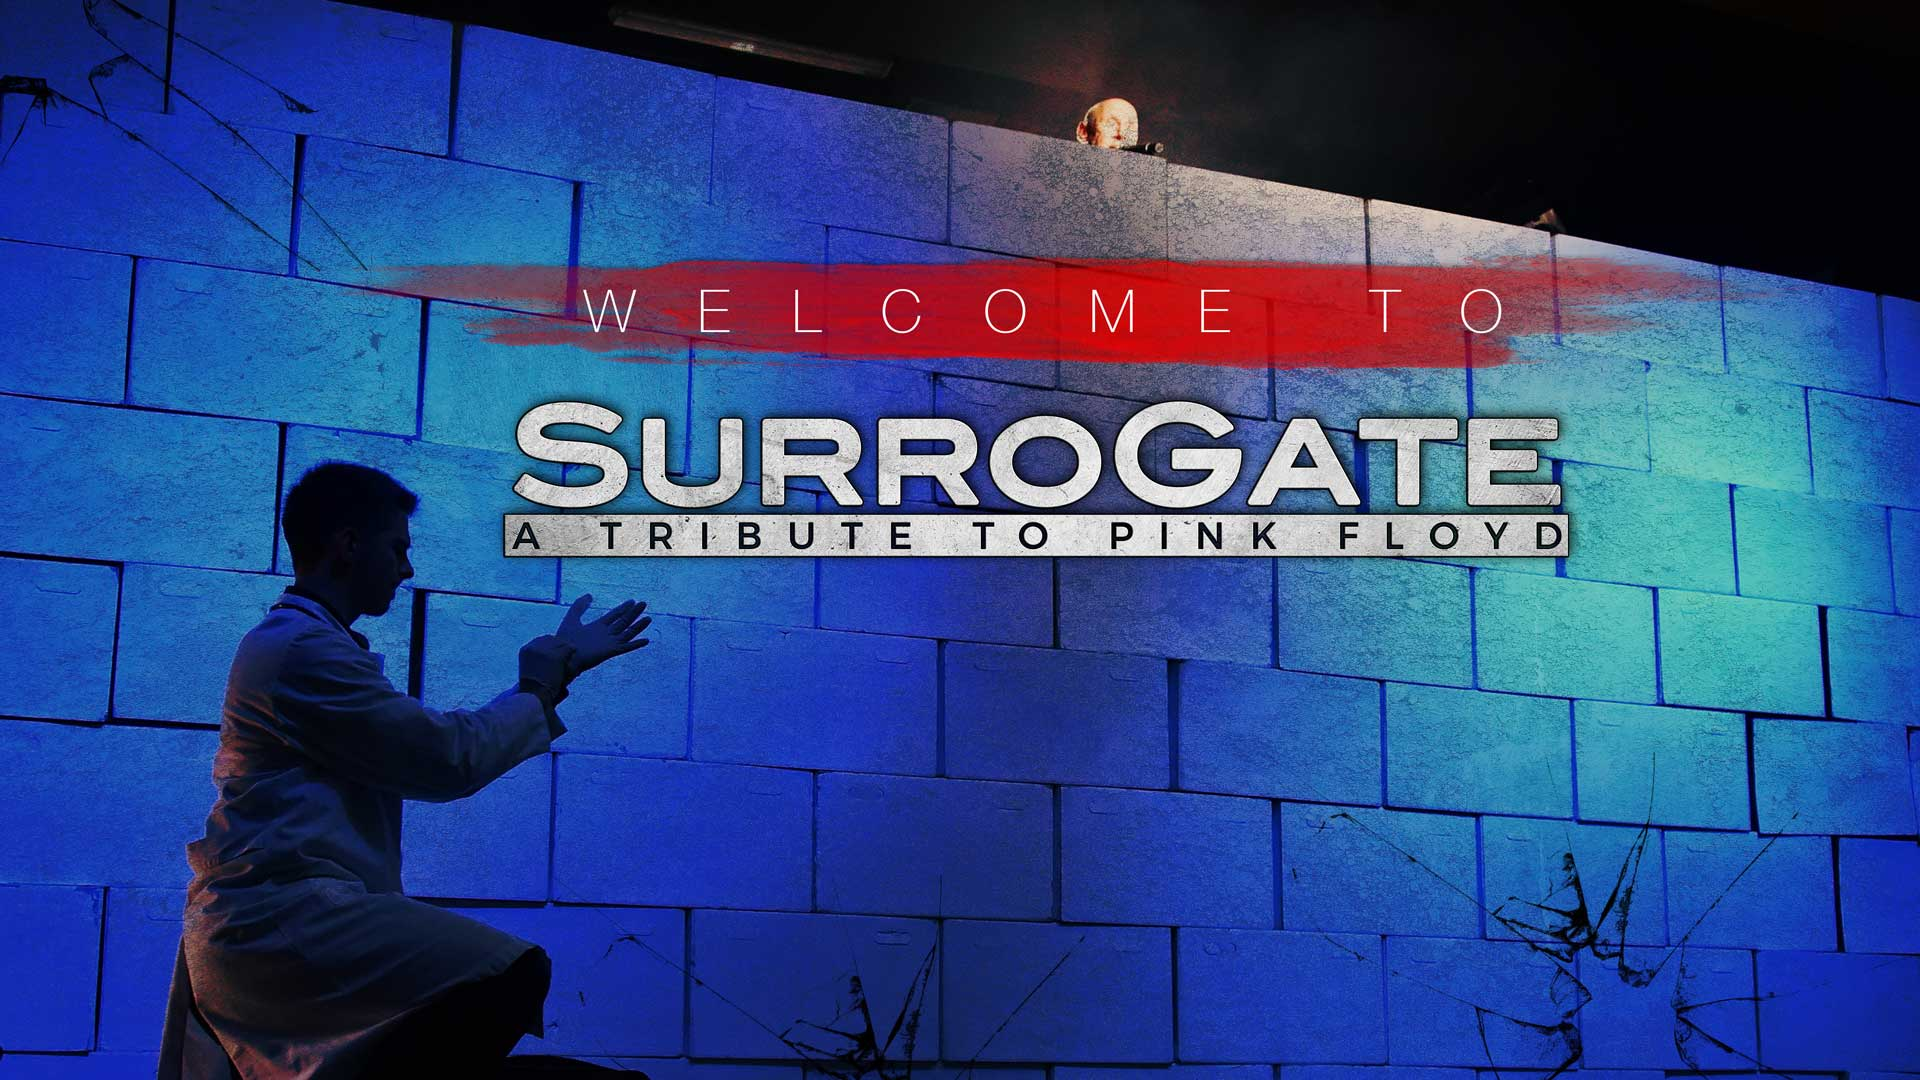 Surrogate - a tribute to Pink Floyd